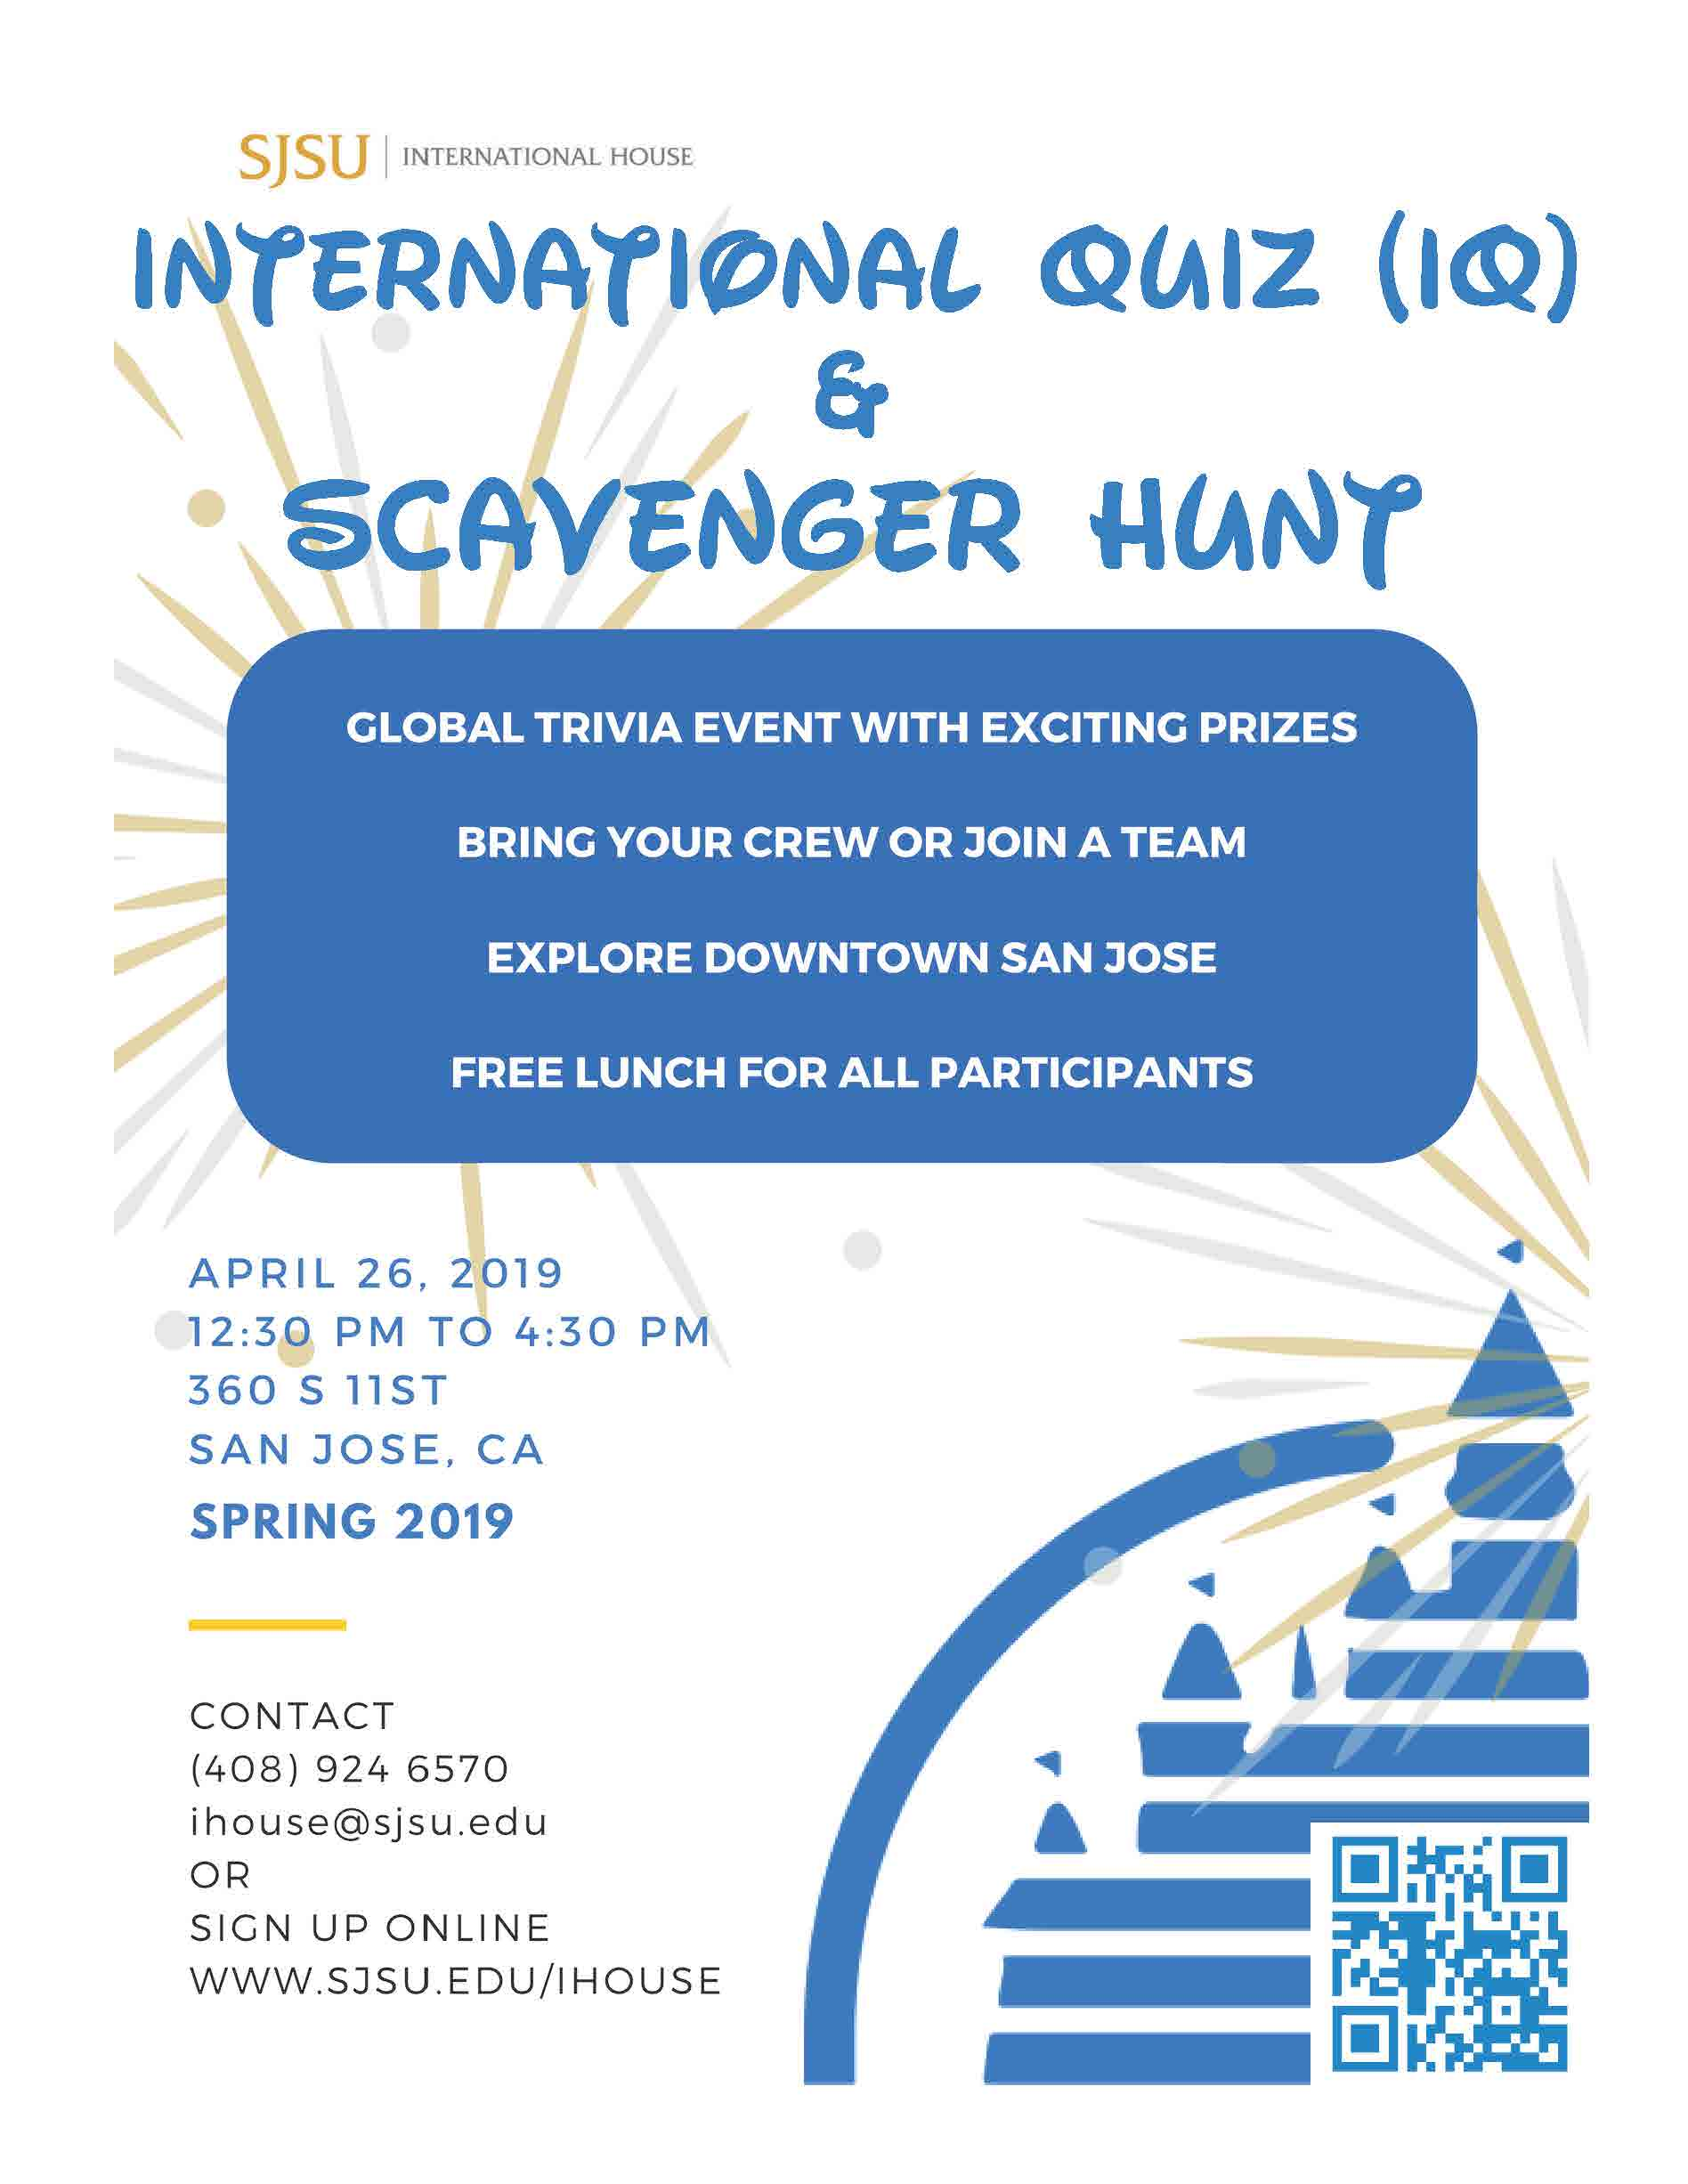 Spring 2019 International Quiz flyer